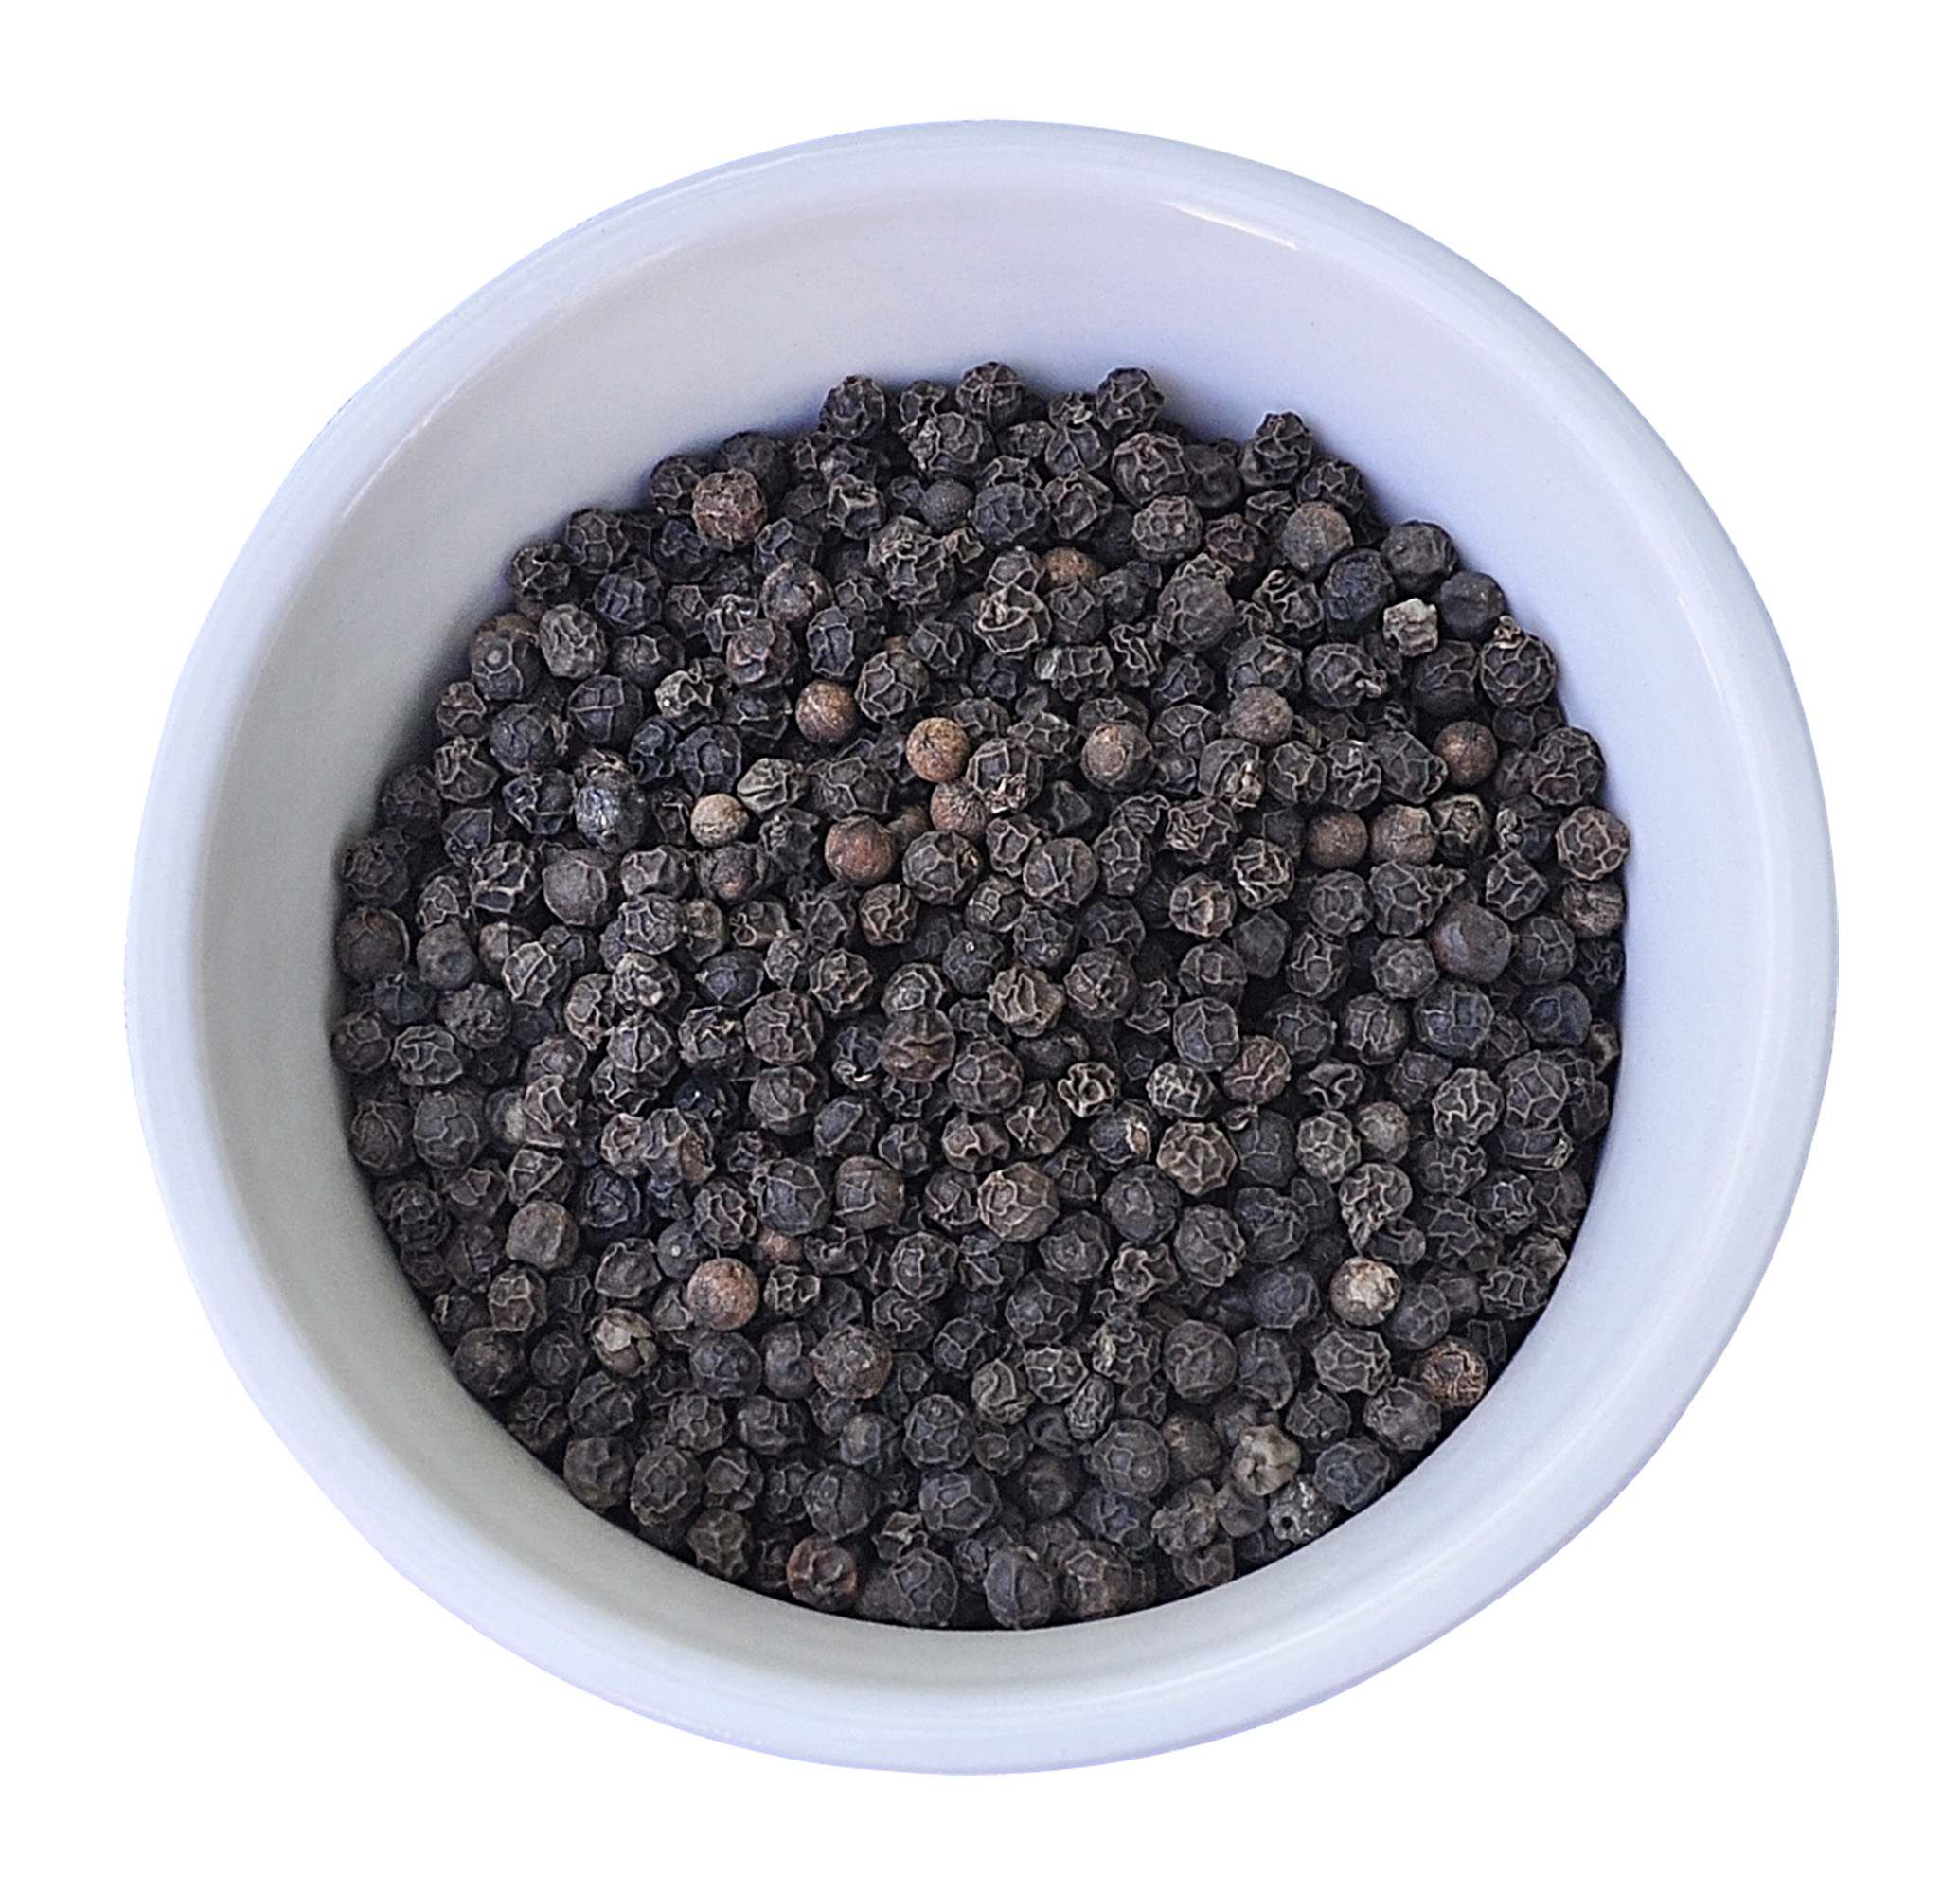 Black Pepper - Black Pepper is widely used today as a seasoning agent in food. Black Pepper is native to tropical countries such as India, Vietnam, Brazil, Indonesia and parts of China. It is one of the world's most traded spices.Black pepper can be traced to ancient times, with references to the spice in Greek and Roman literature. By 40 AD, the Romans had a thriving trade in Pepper. At one point, Pepper was so highly valued that it was used as a form of currency along the trading routes. The famous medieval French phrase